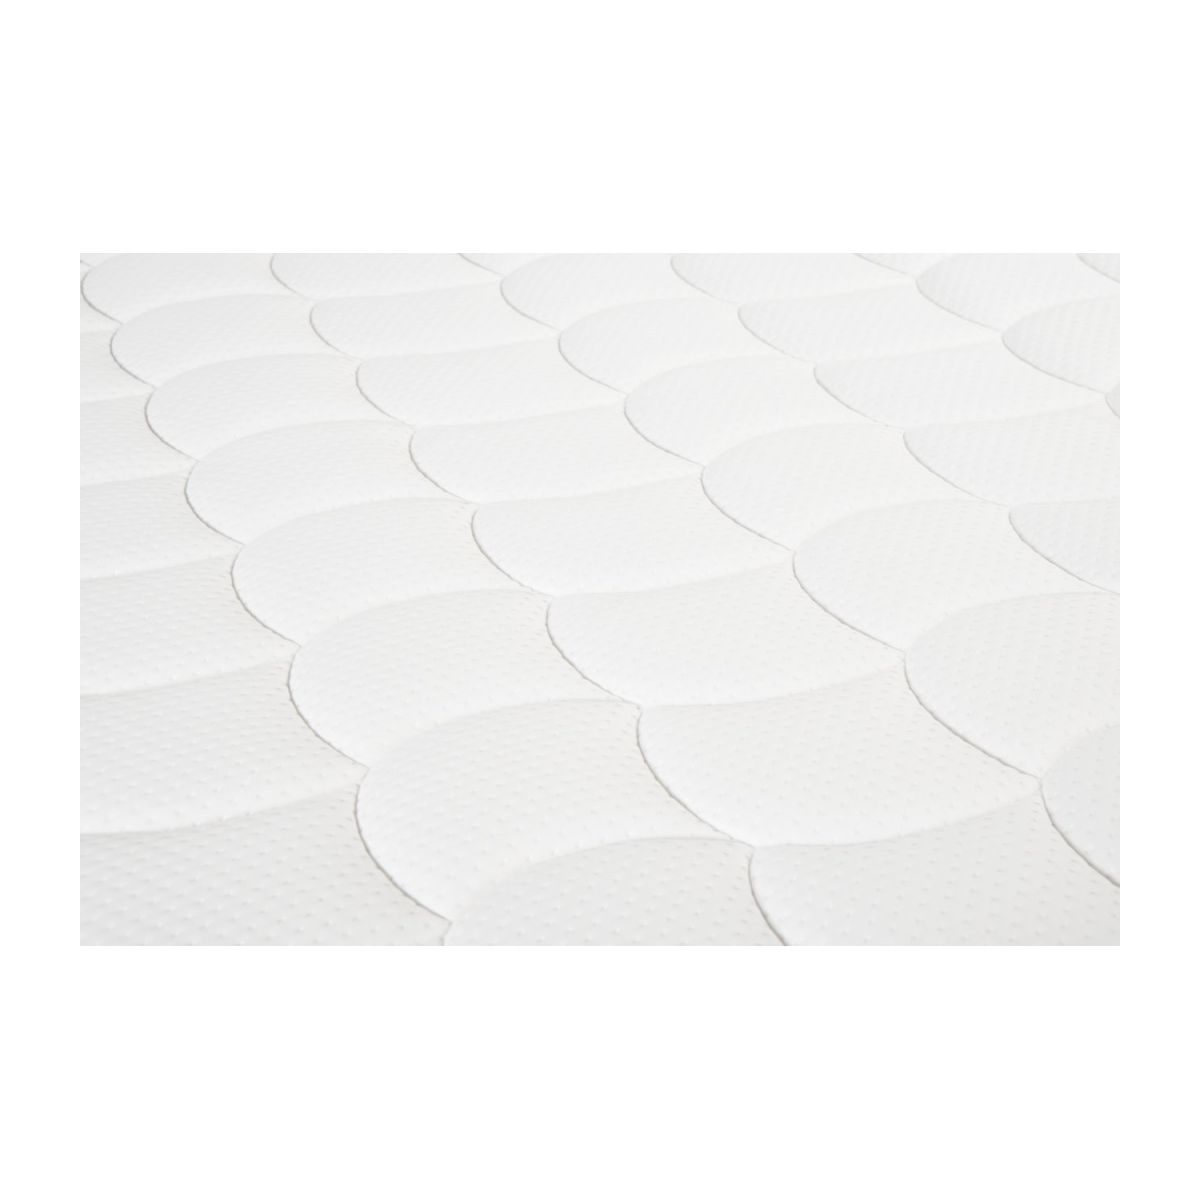 Foam mattress, width 22cm, 140x200cm - medium support n°4